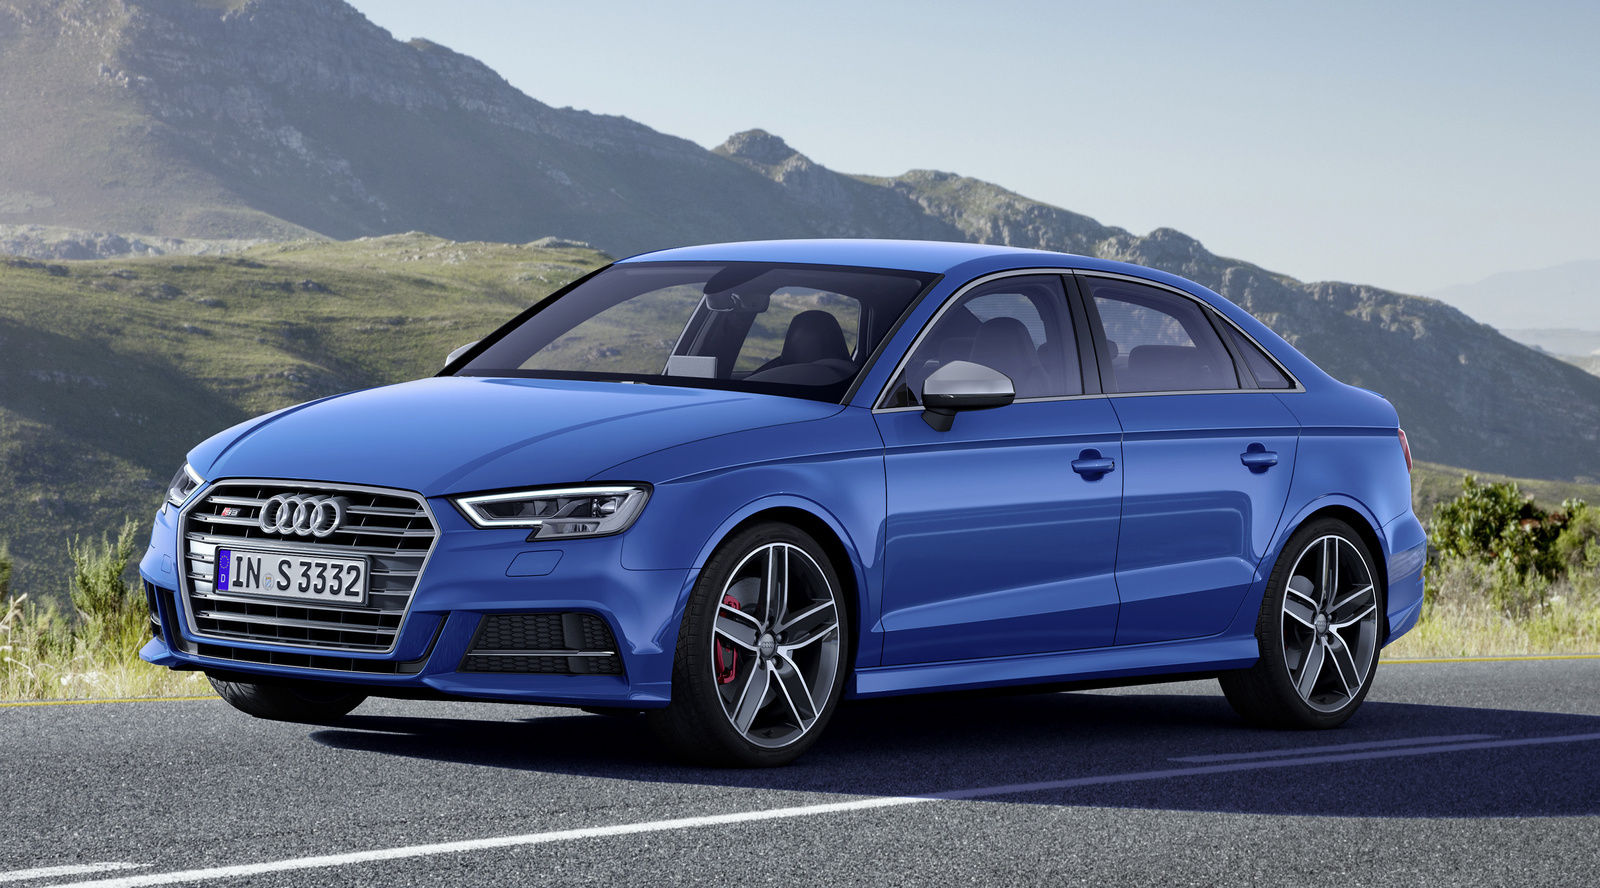 Audi S Overview CarGurus - 2018 audi a3 msrp